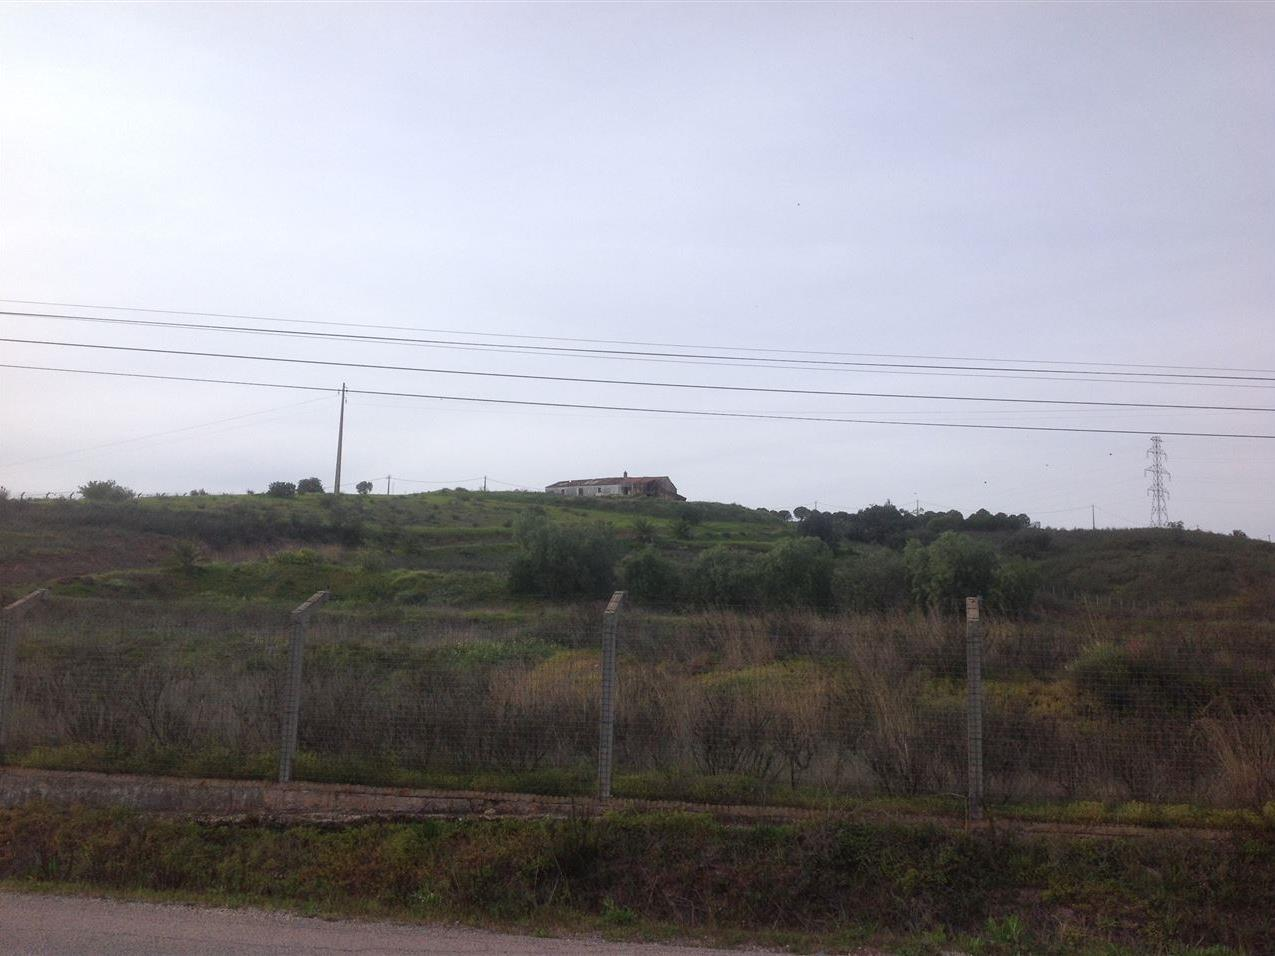 Land for Sale at Terreno com ruina for Sale Silves, Algarve Portugal